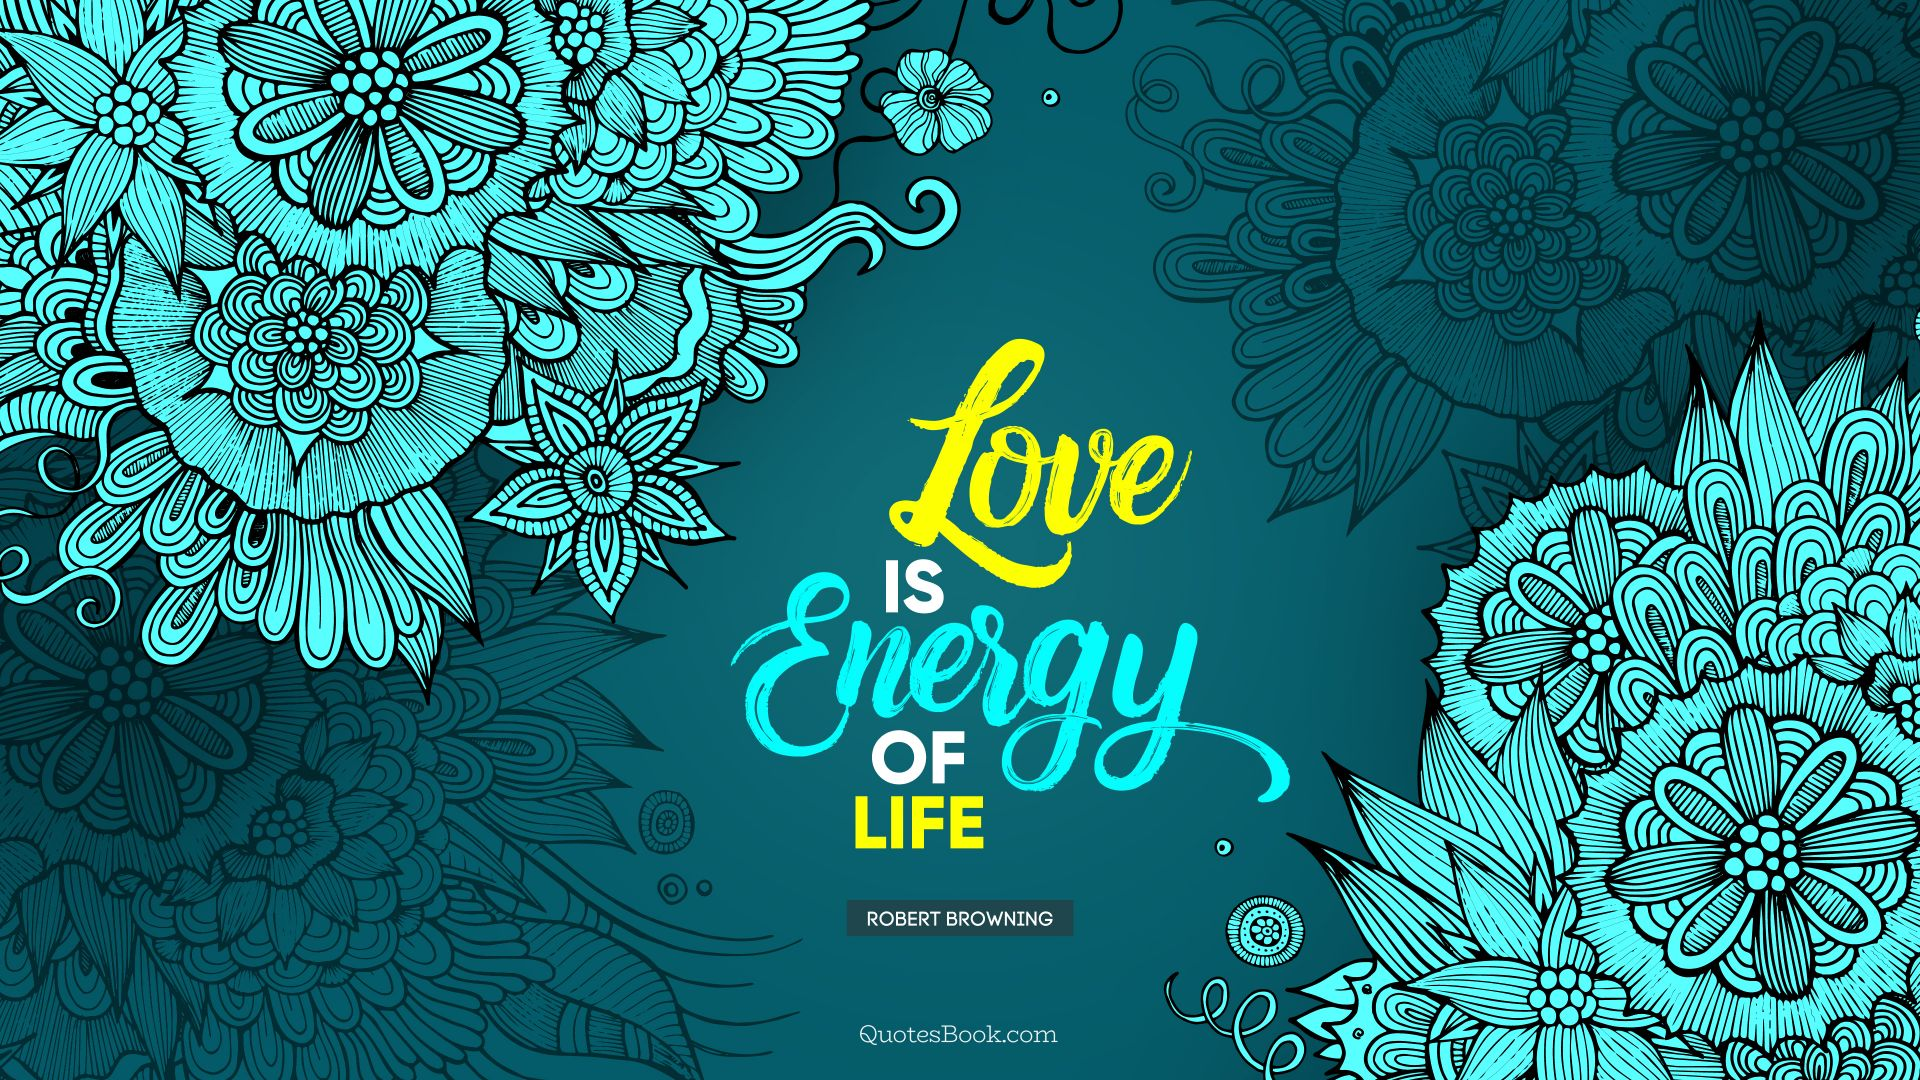 Love is energy of life. - Quote by Robert Browning